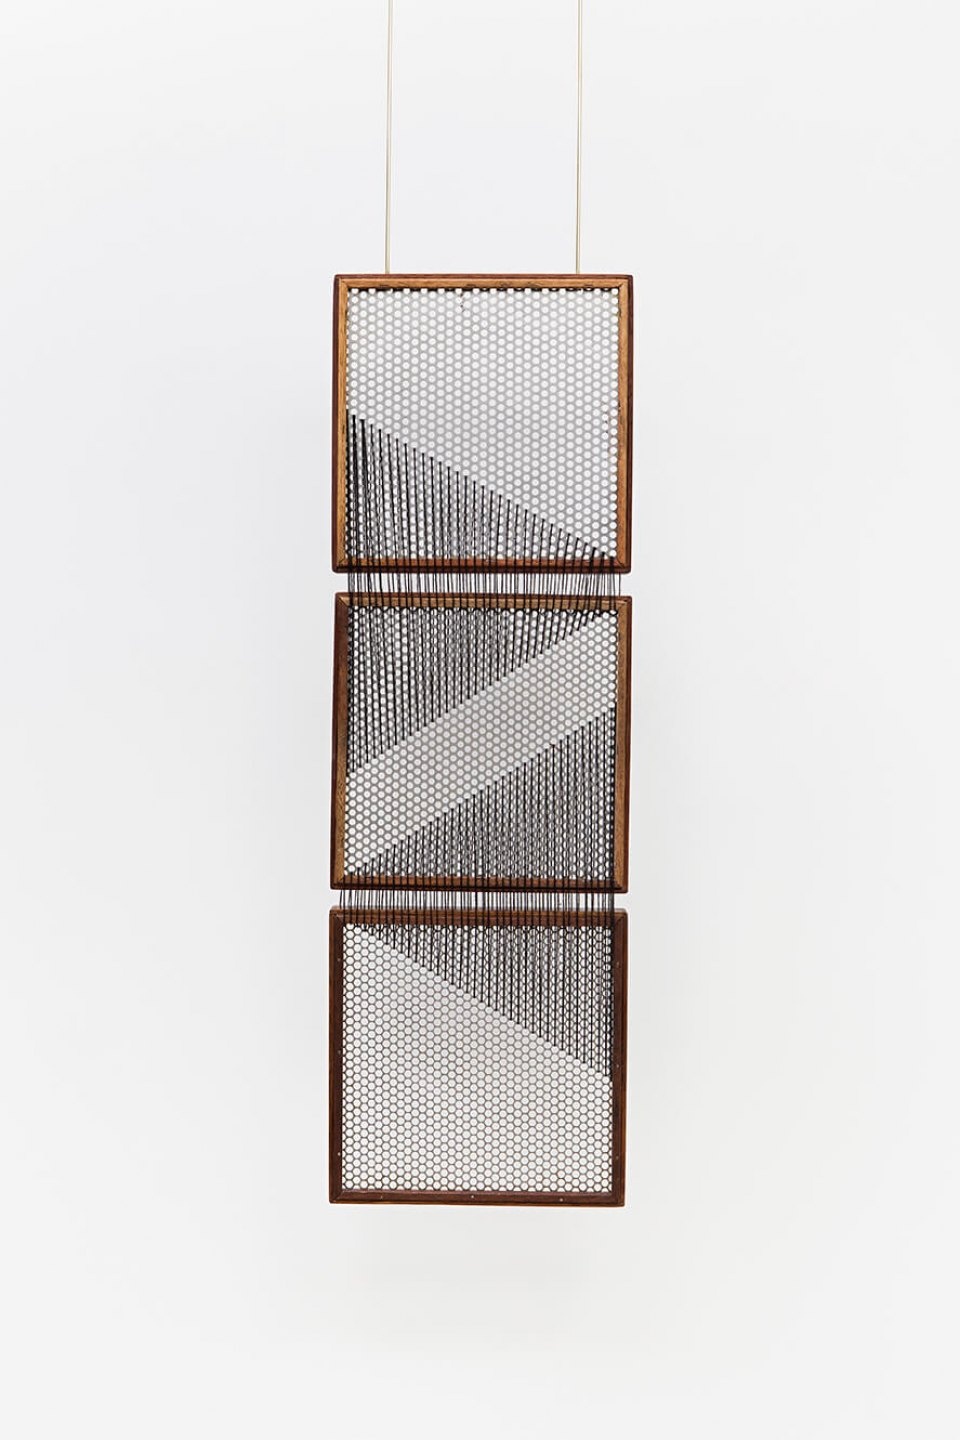 Paloma Bosquê,<em> On provisory interaction (geometry of relations #1)</em>, 2015, coffee sieve, wool and brass rods, 93,5 × 30 cm - Mendes Wood DM